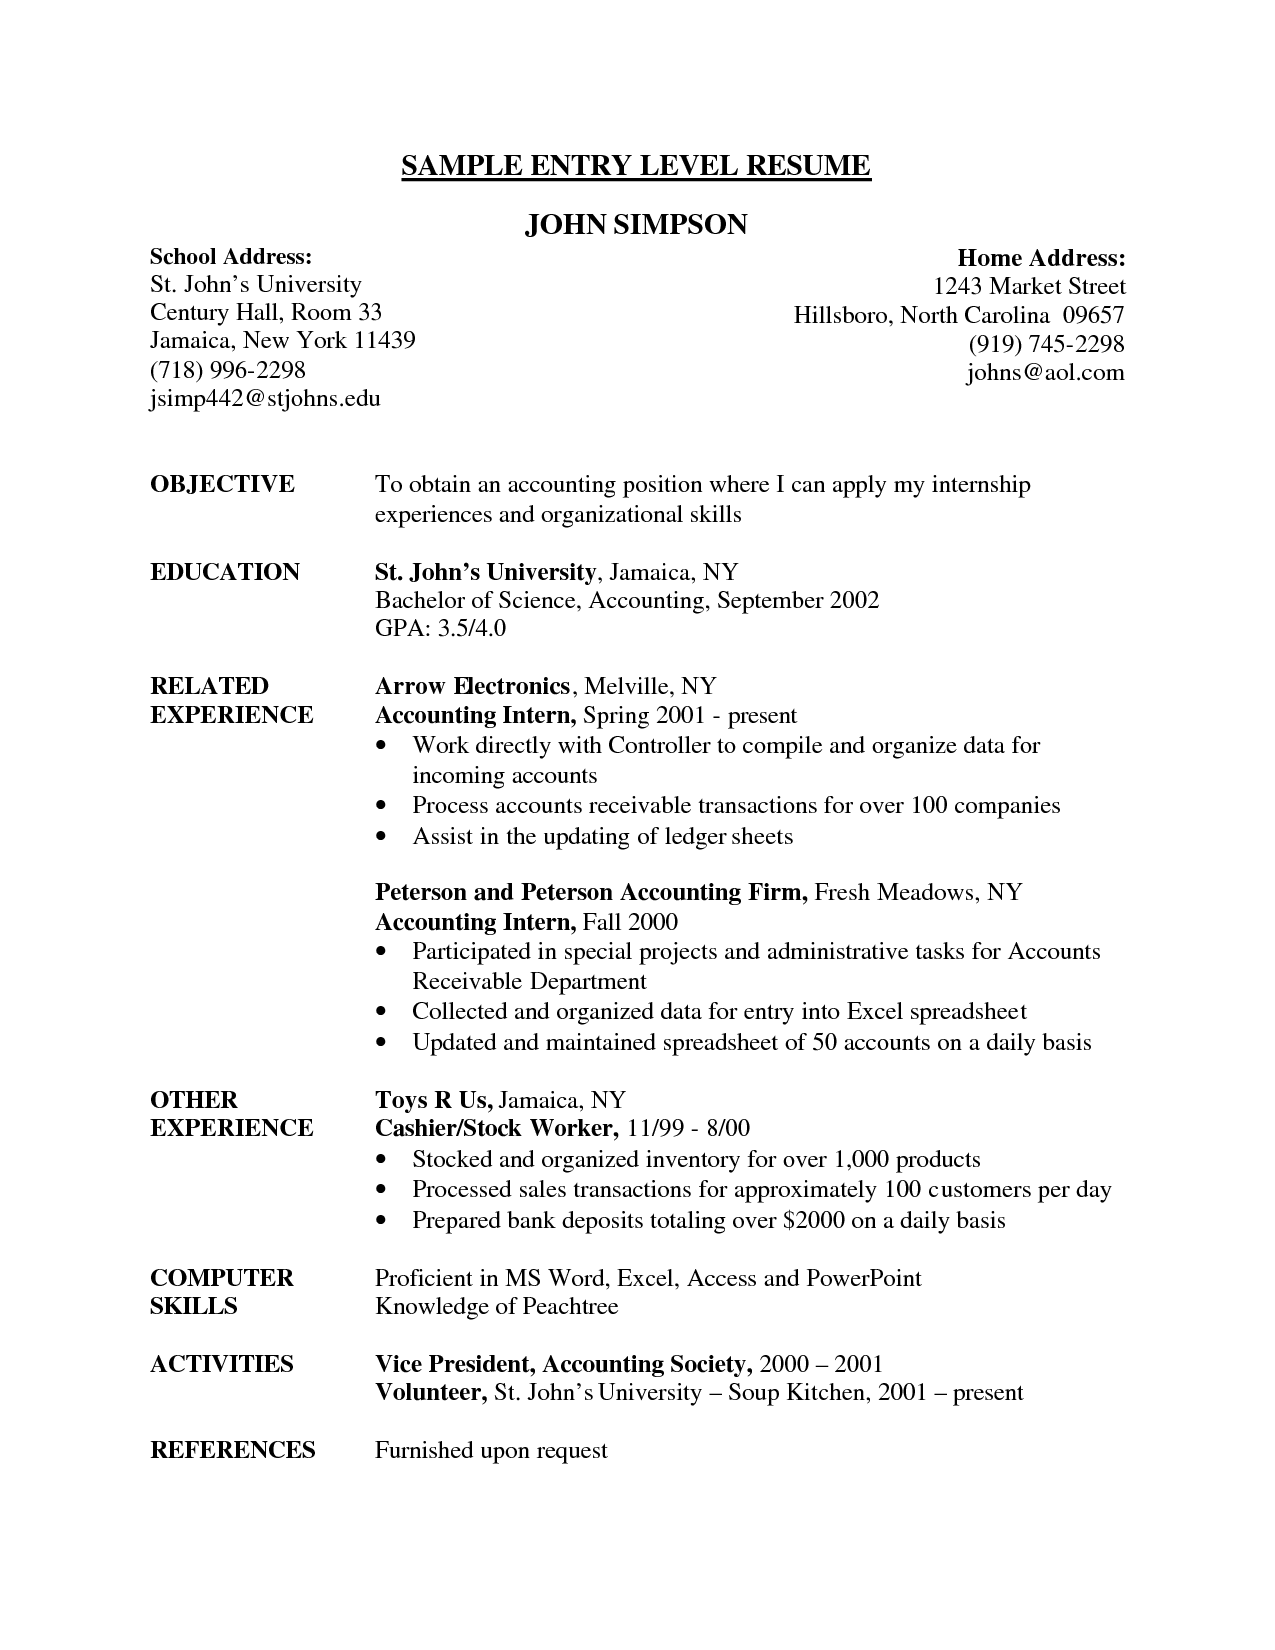 sample resume outline entry level resume samples template entry level resume samples